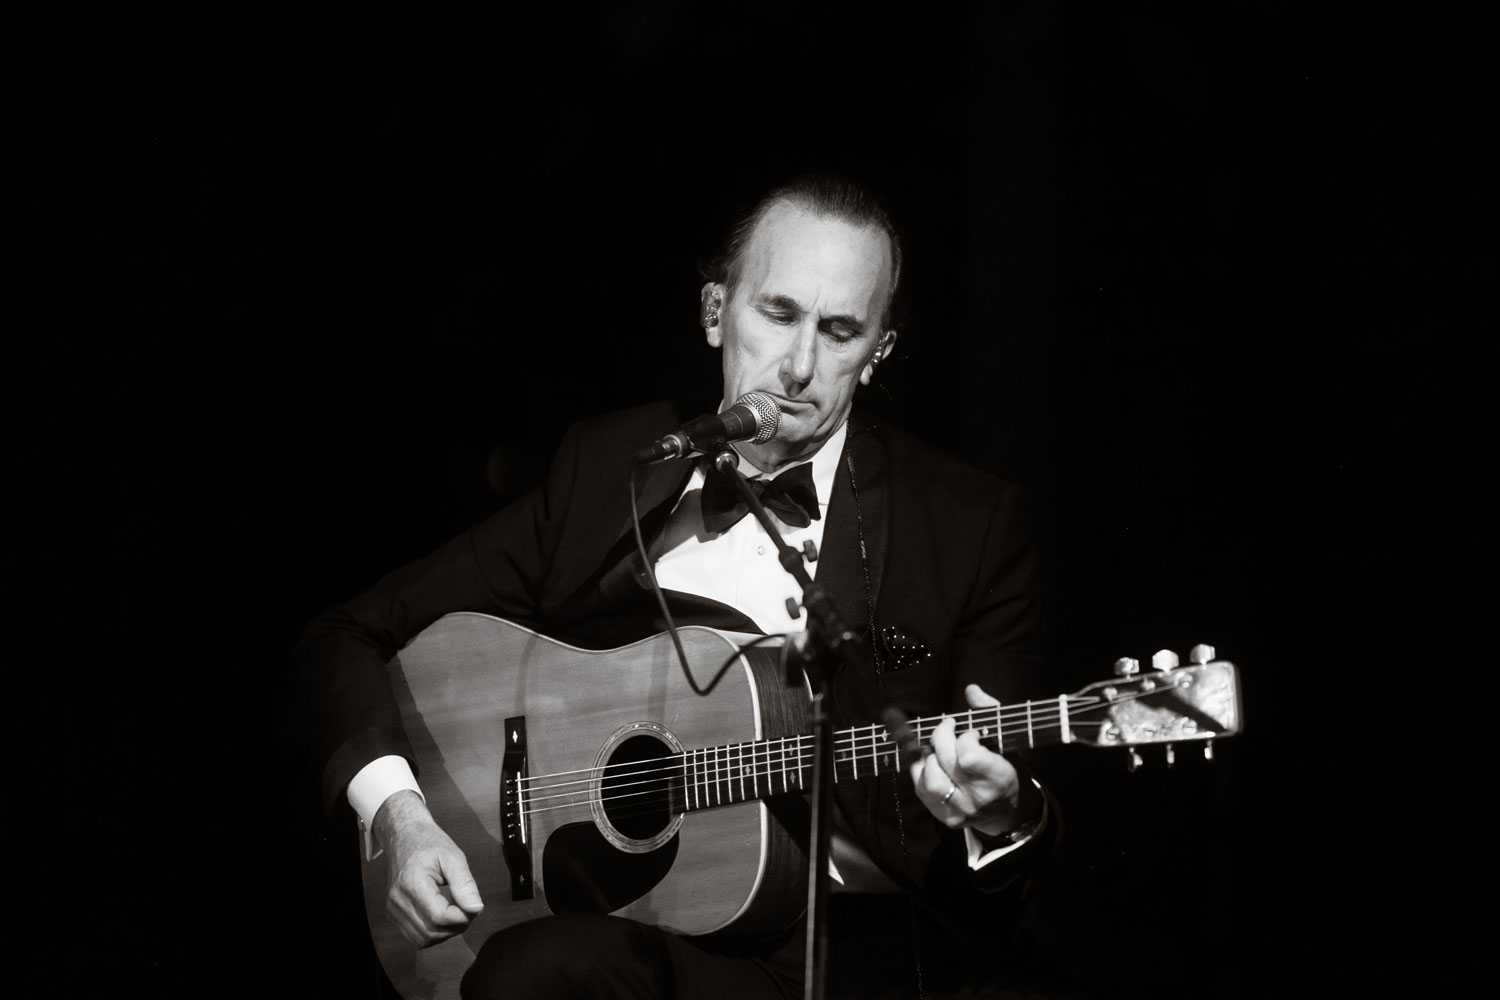 black and white photo of father of bride playing guitar and performing song at wedding